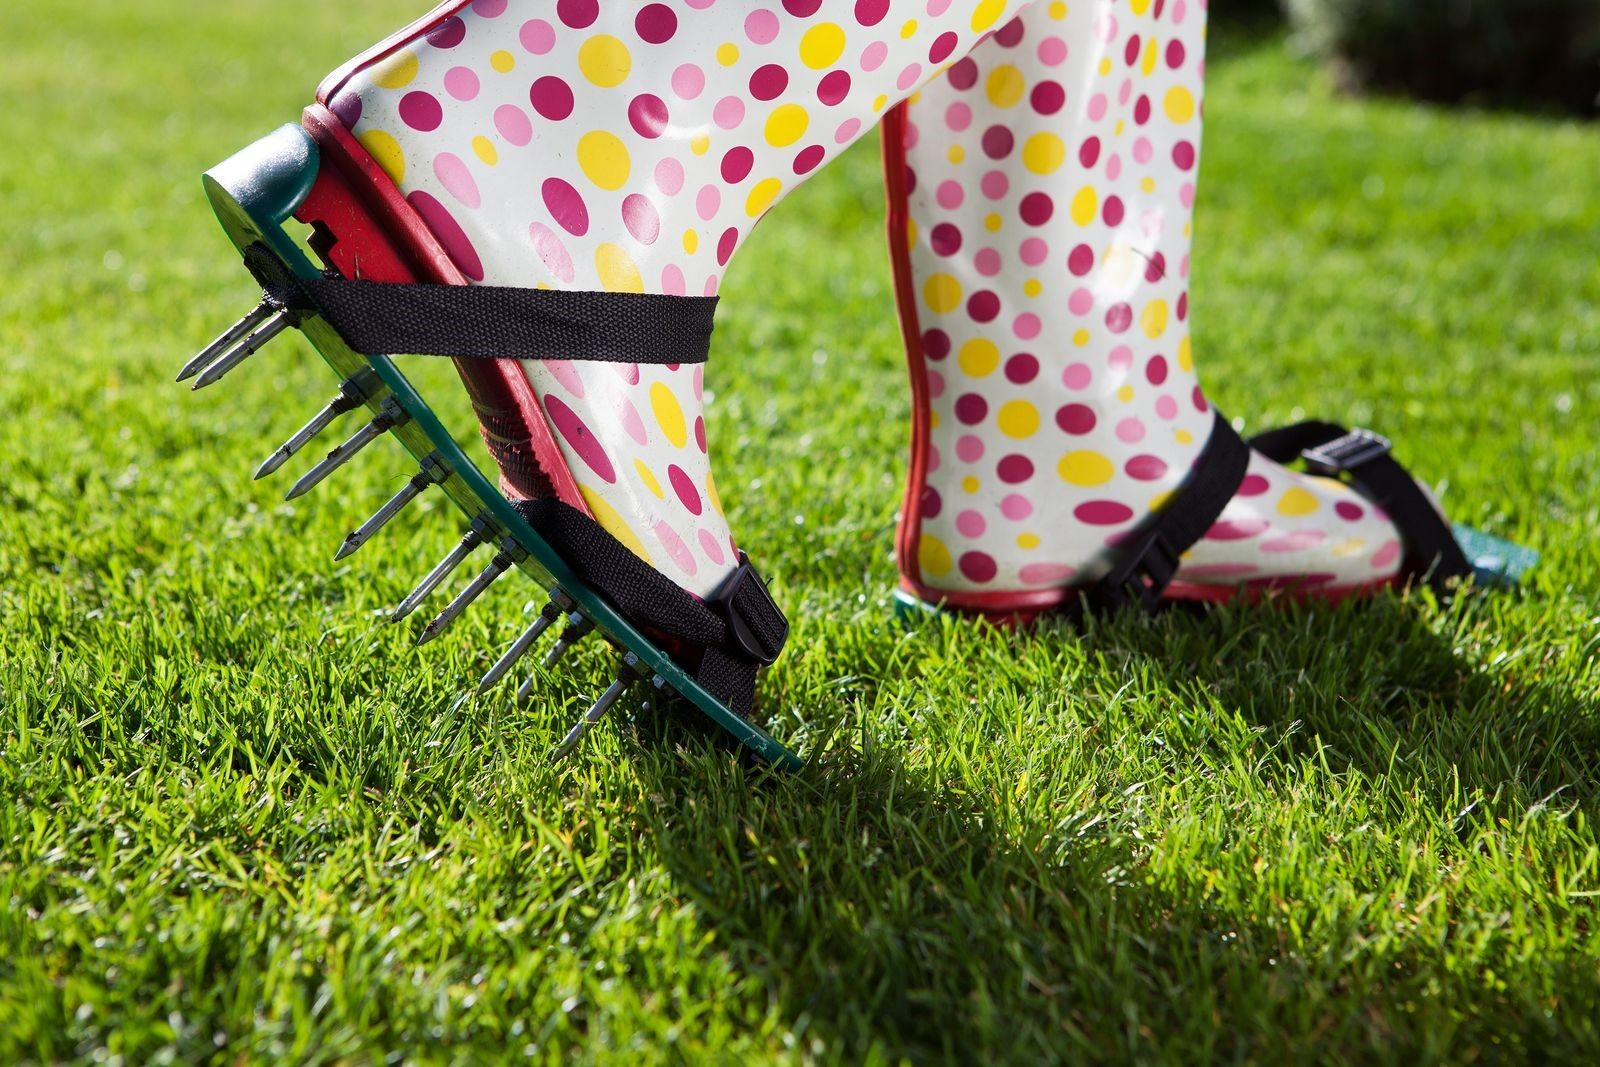 Your Yard Will Tell You When To Hire A Lawn Care Service For Aeration